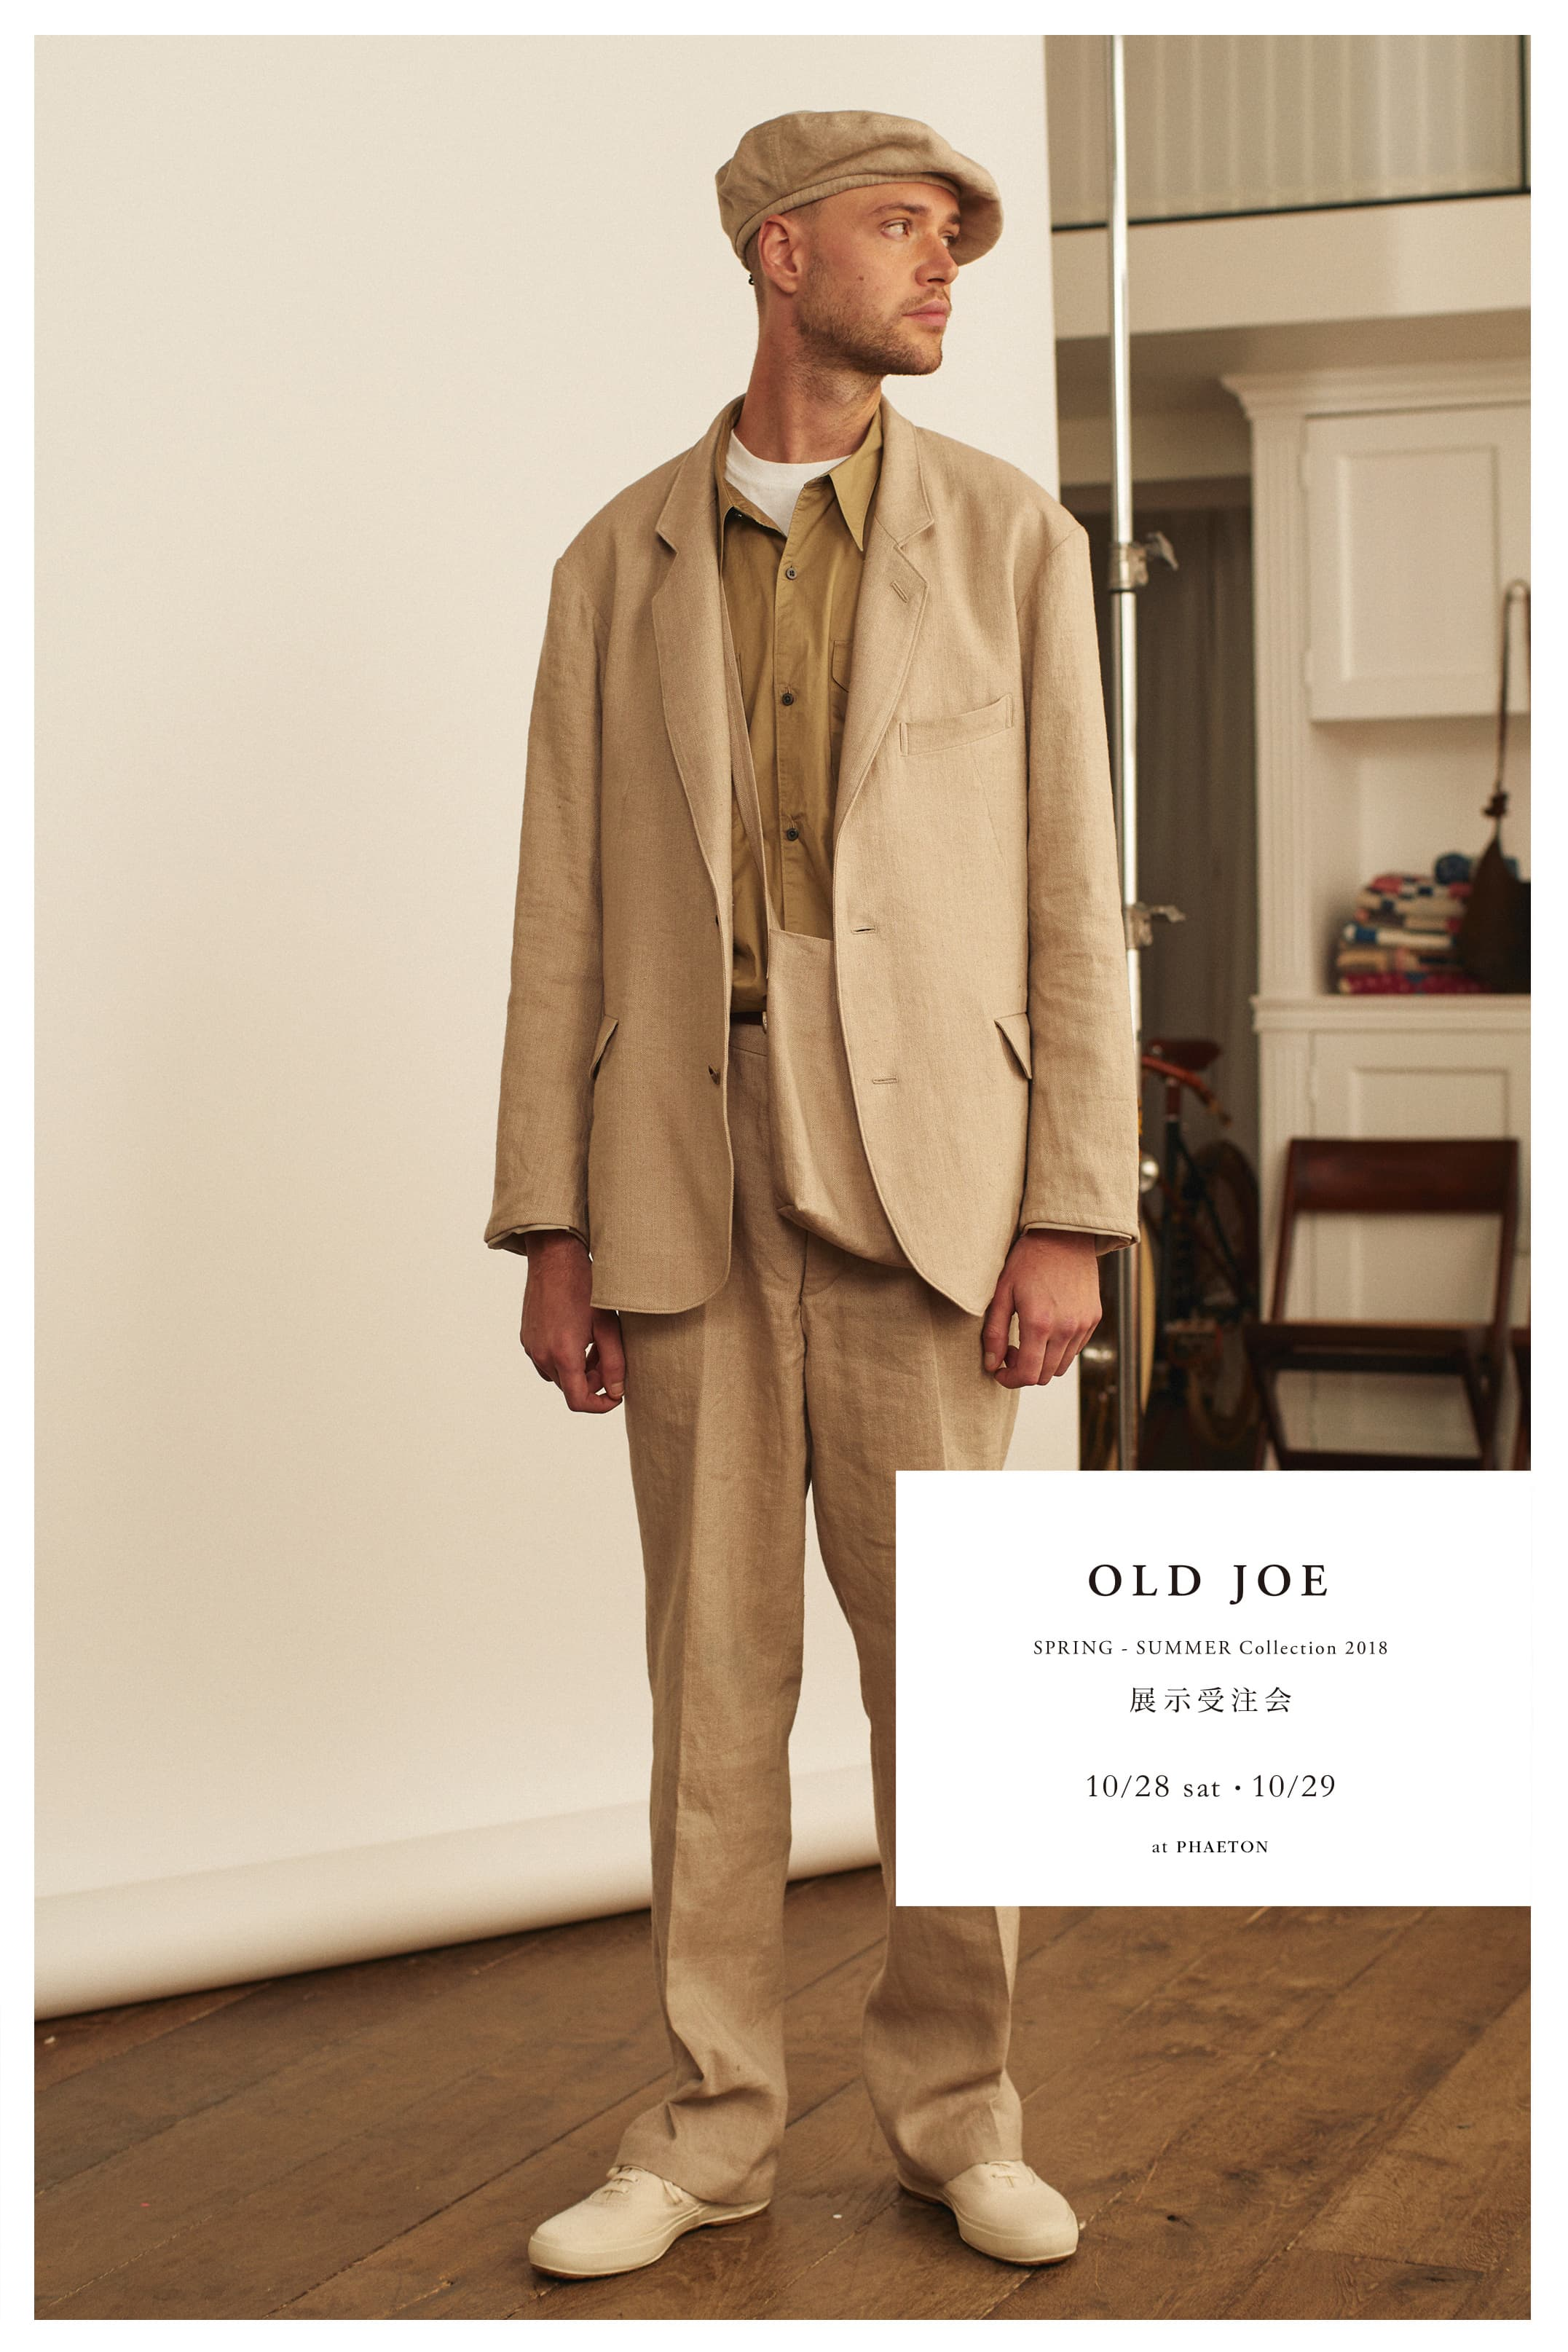 OLD JOE 2018 SS